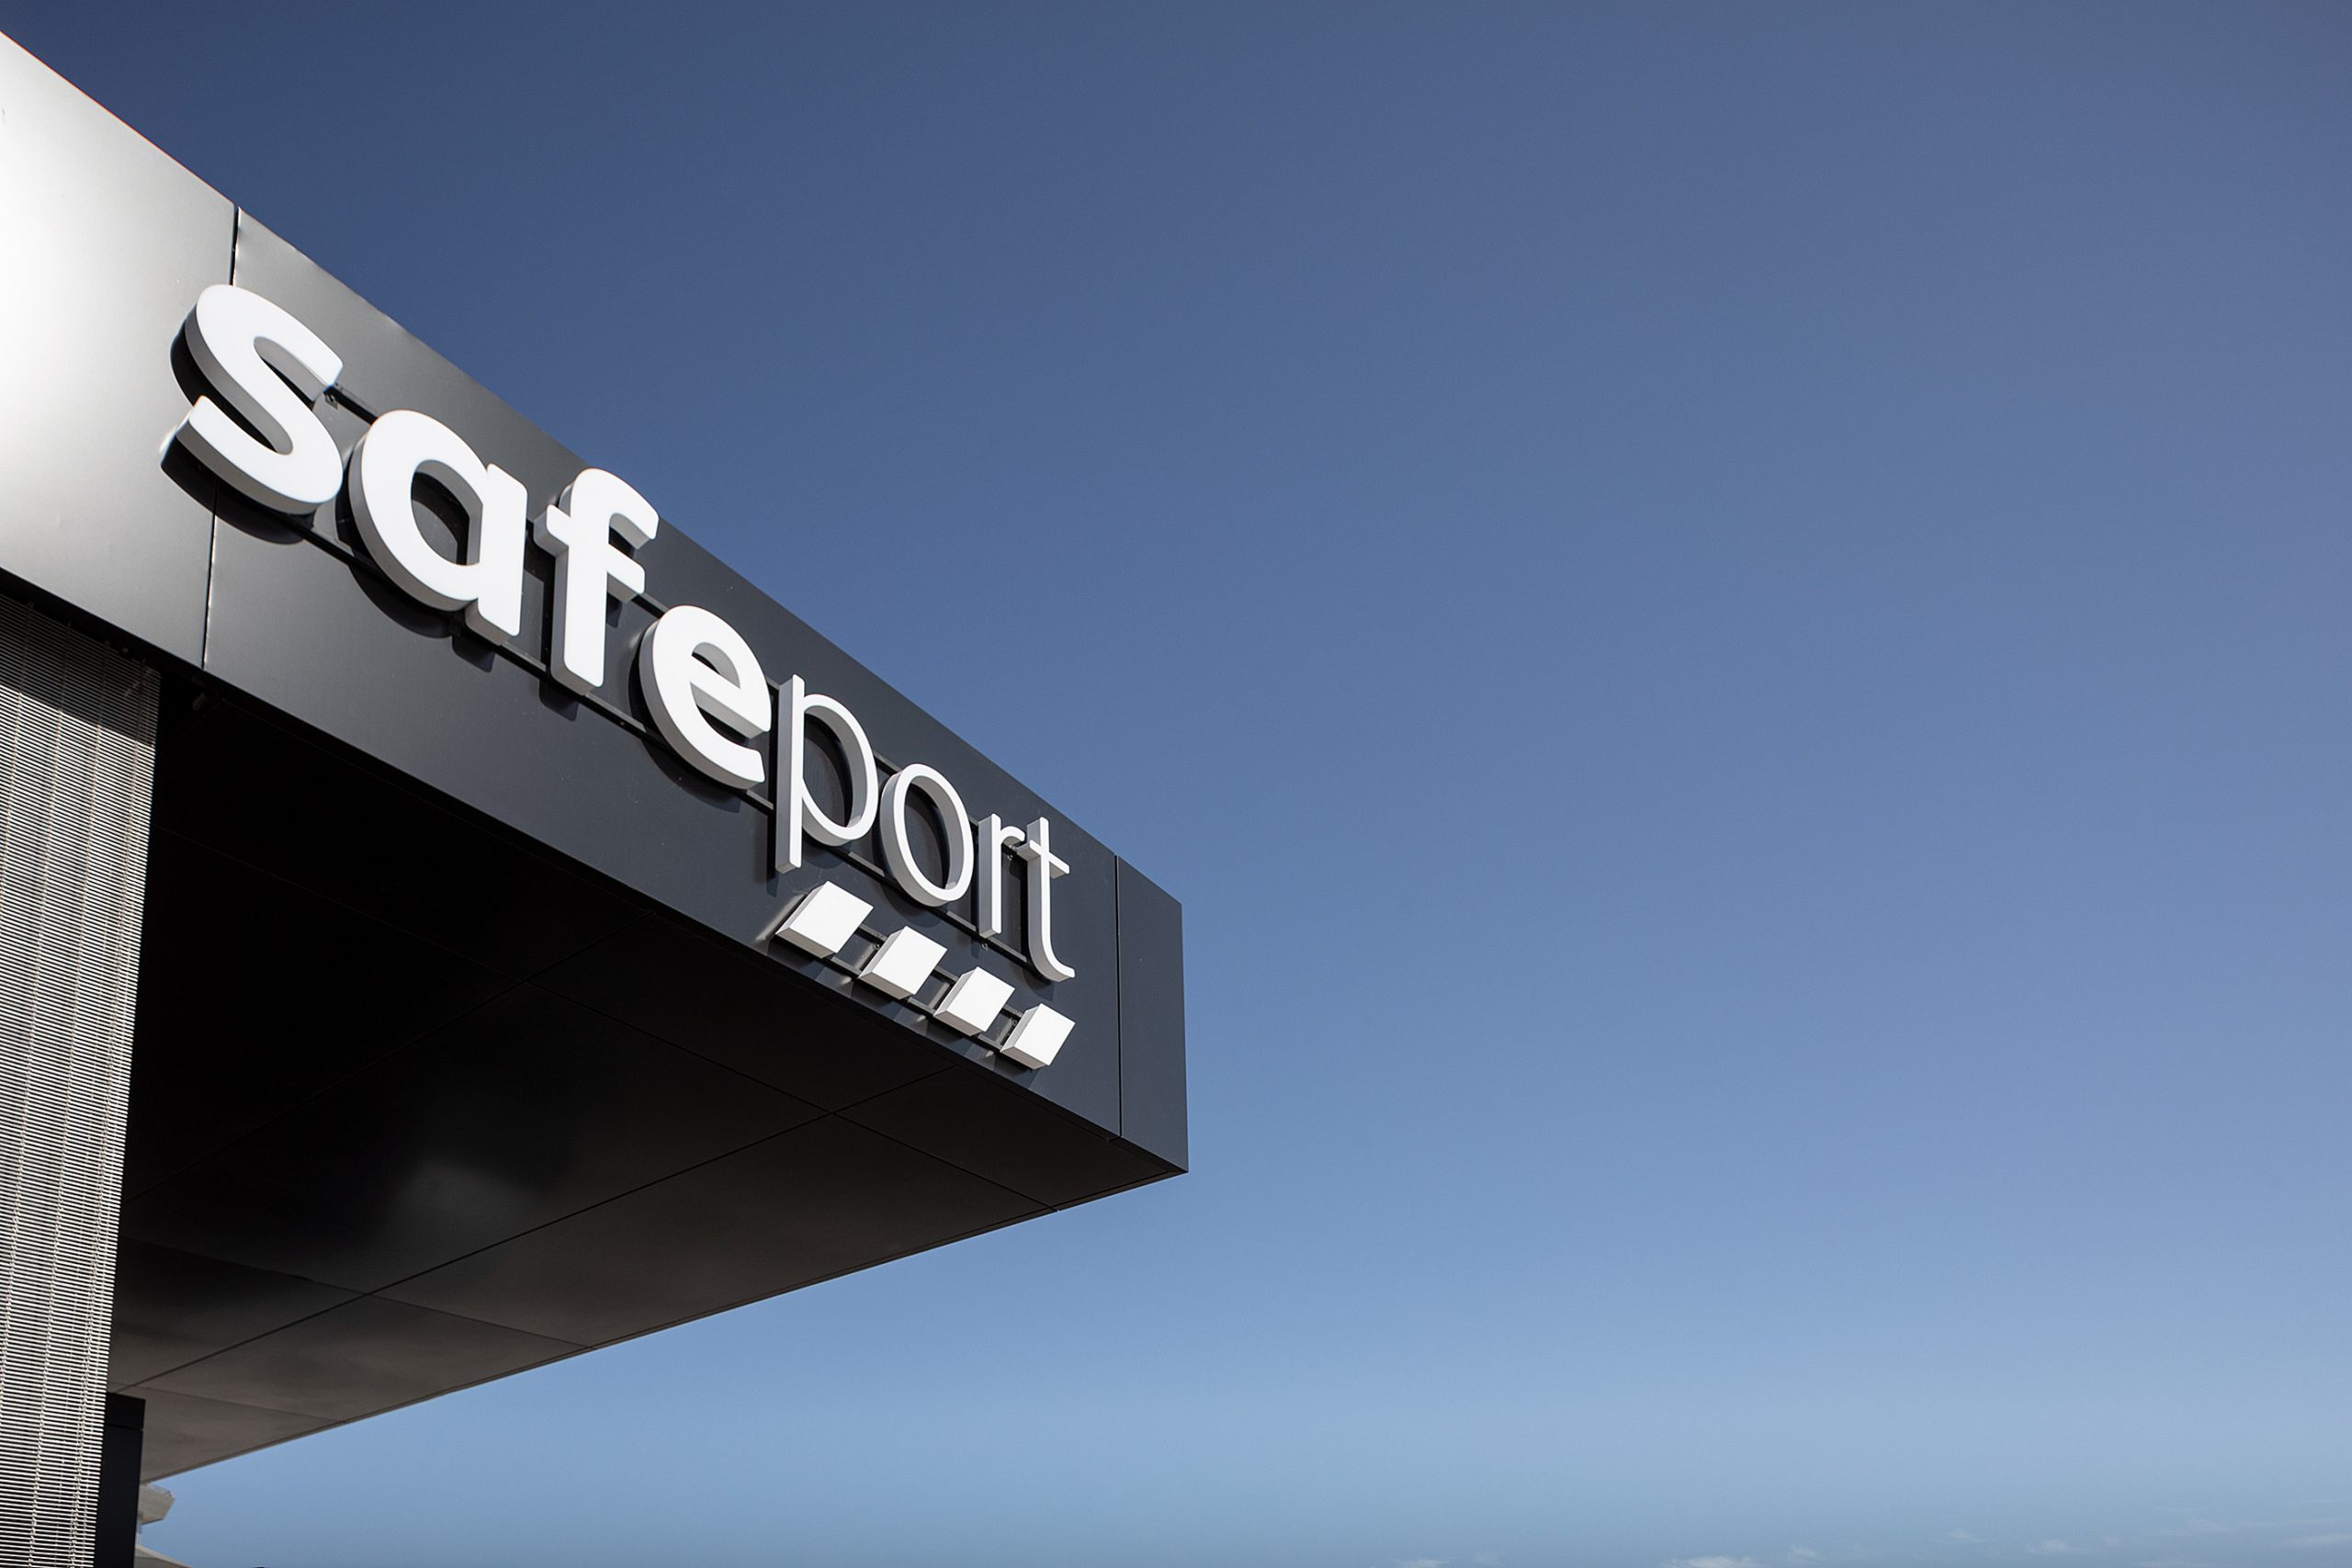 Safeport _FBO23